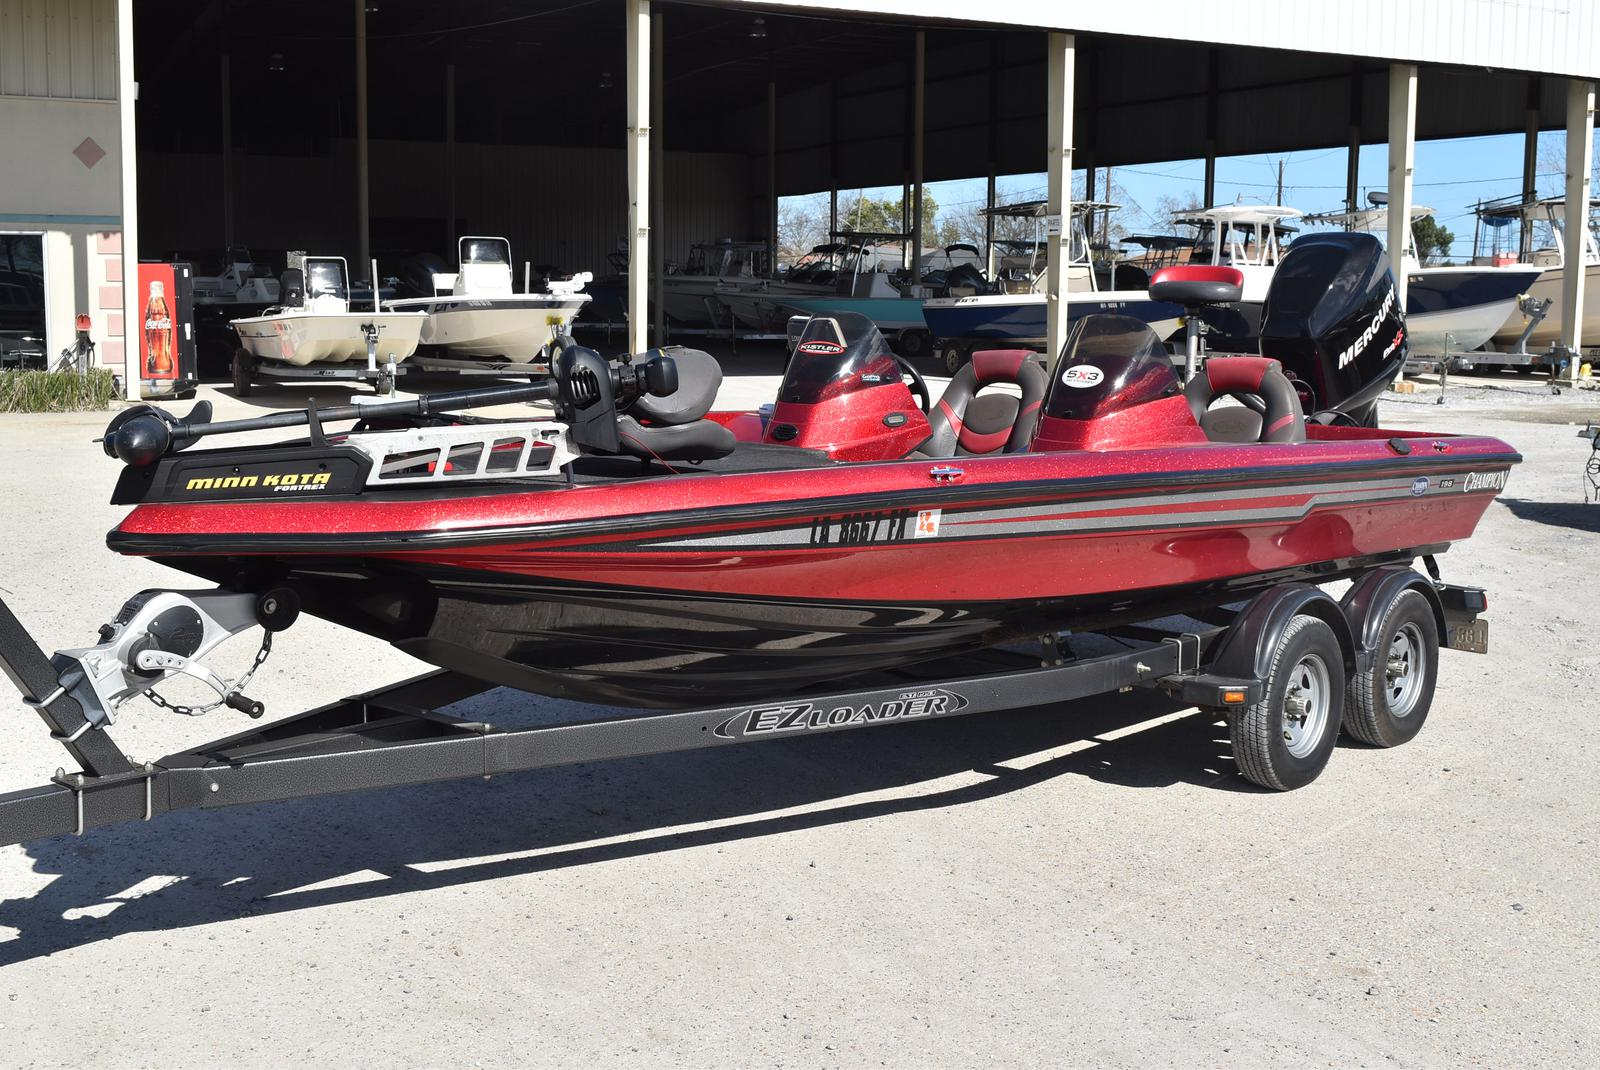 2006 Champion boat for sale, model of the boat is 198 DCX ELITE & Image # 3 of 20